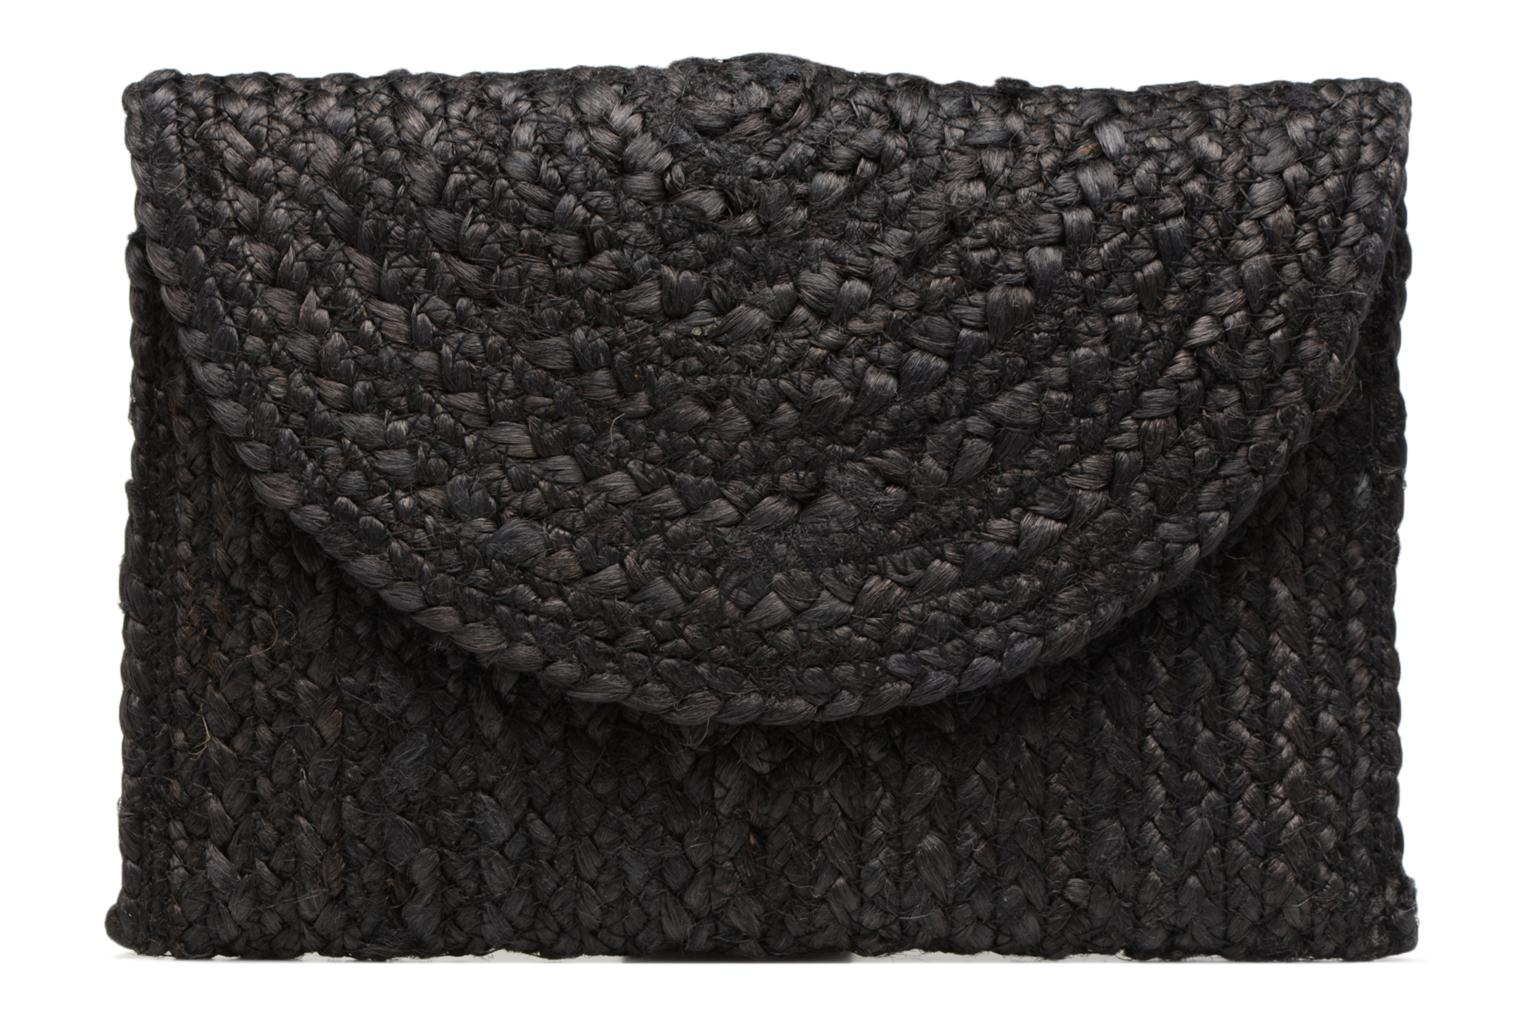 Clutch Gracia Pieces Straw Clutch Gracia Straw Black Pieces wAq67Sqx8